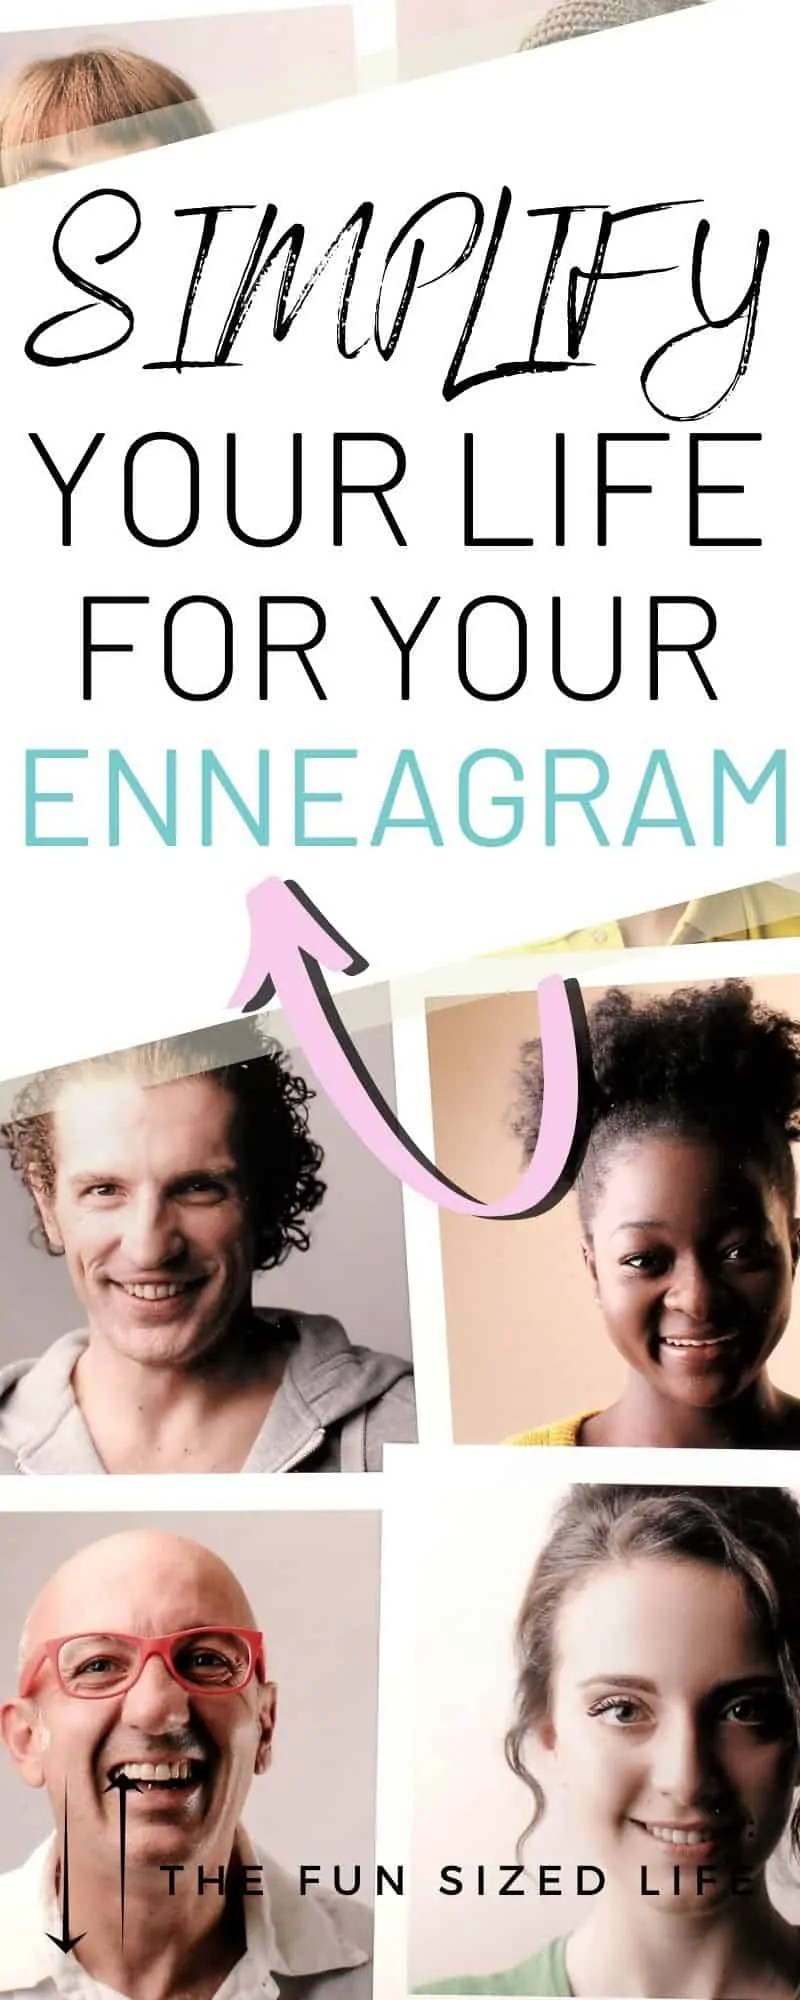 Learn simplifying techniques for your enneagram type! Not everyone is wired the same. Here's how to change your life for the better based on your enneagram!